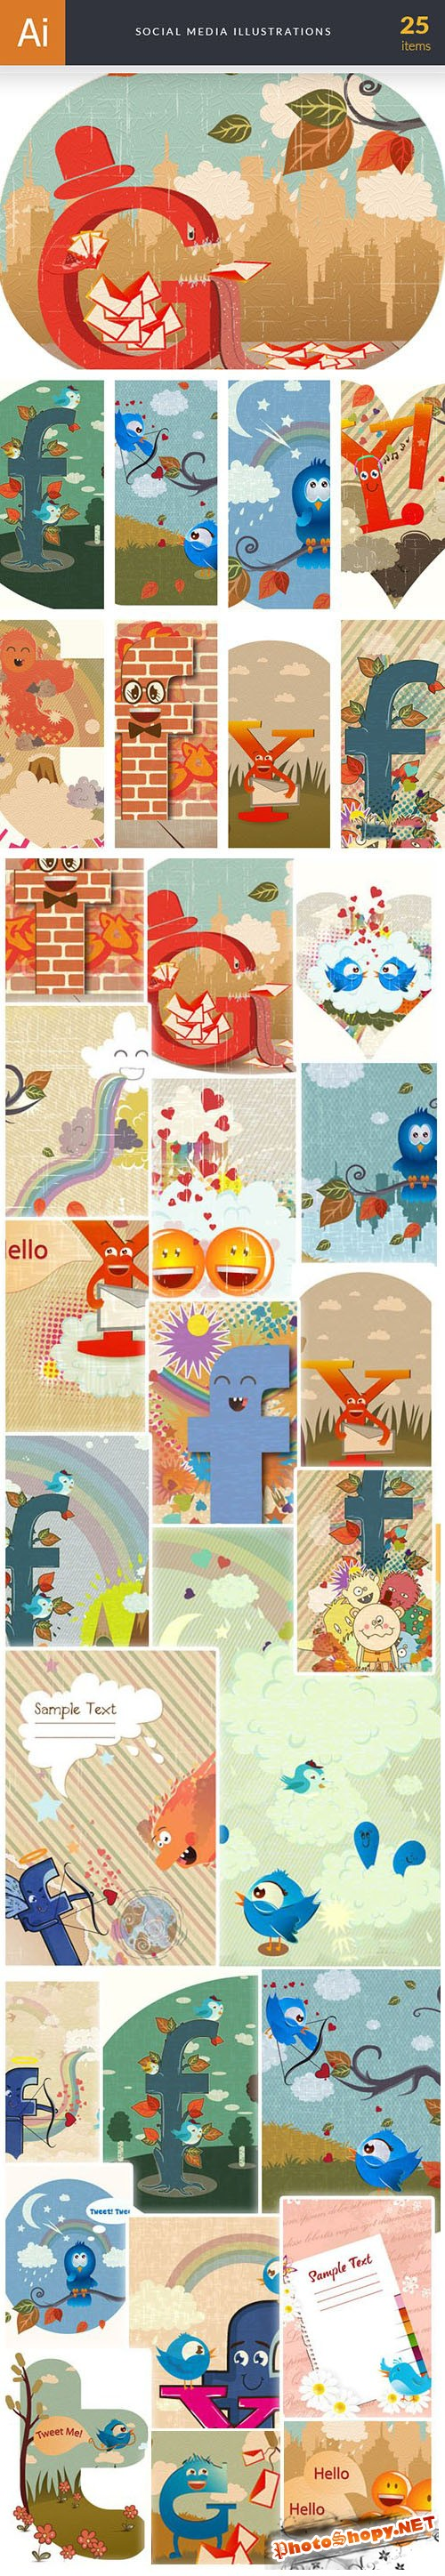 Social Media Vector Illustrations Collection